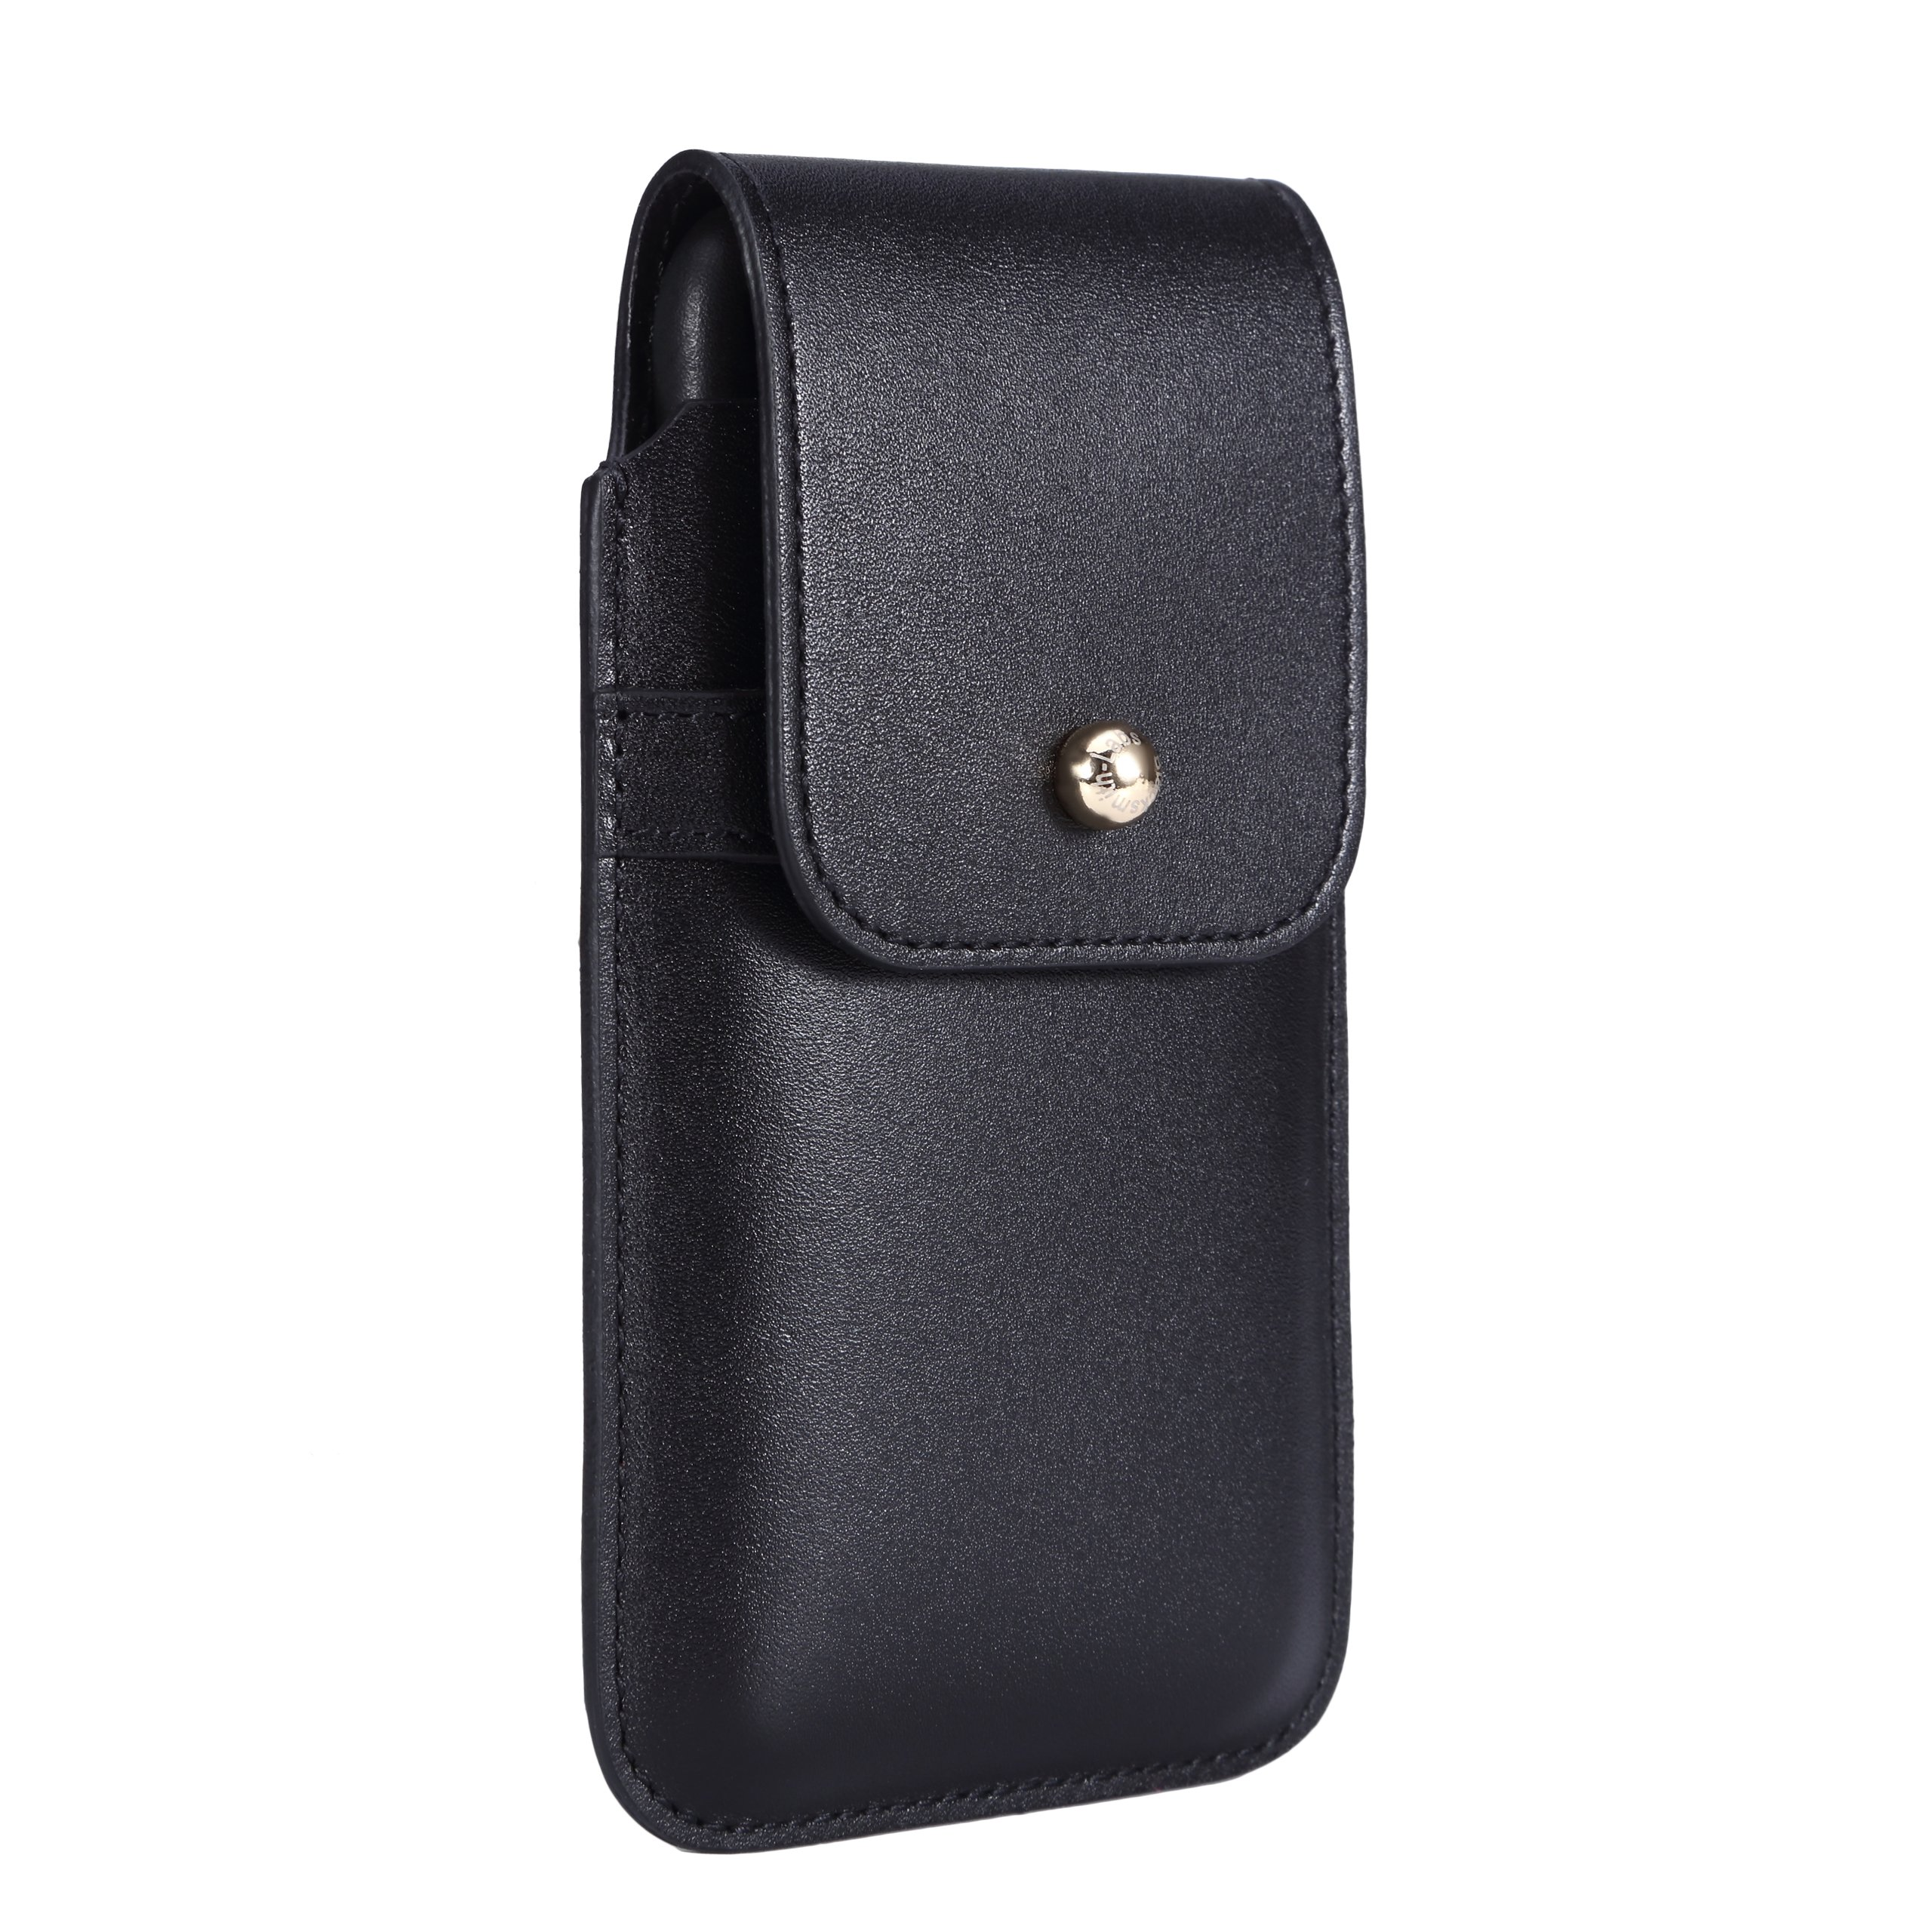 Blacksmith-Labs Barrett 2017 Premium Genuine Leather Swivel Belt Clip Holster for Apple iPhone X for use with no cases or covers - Black Cowhide/Gold Belt Clip